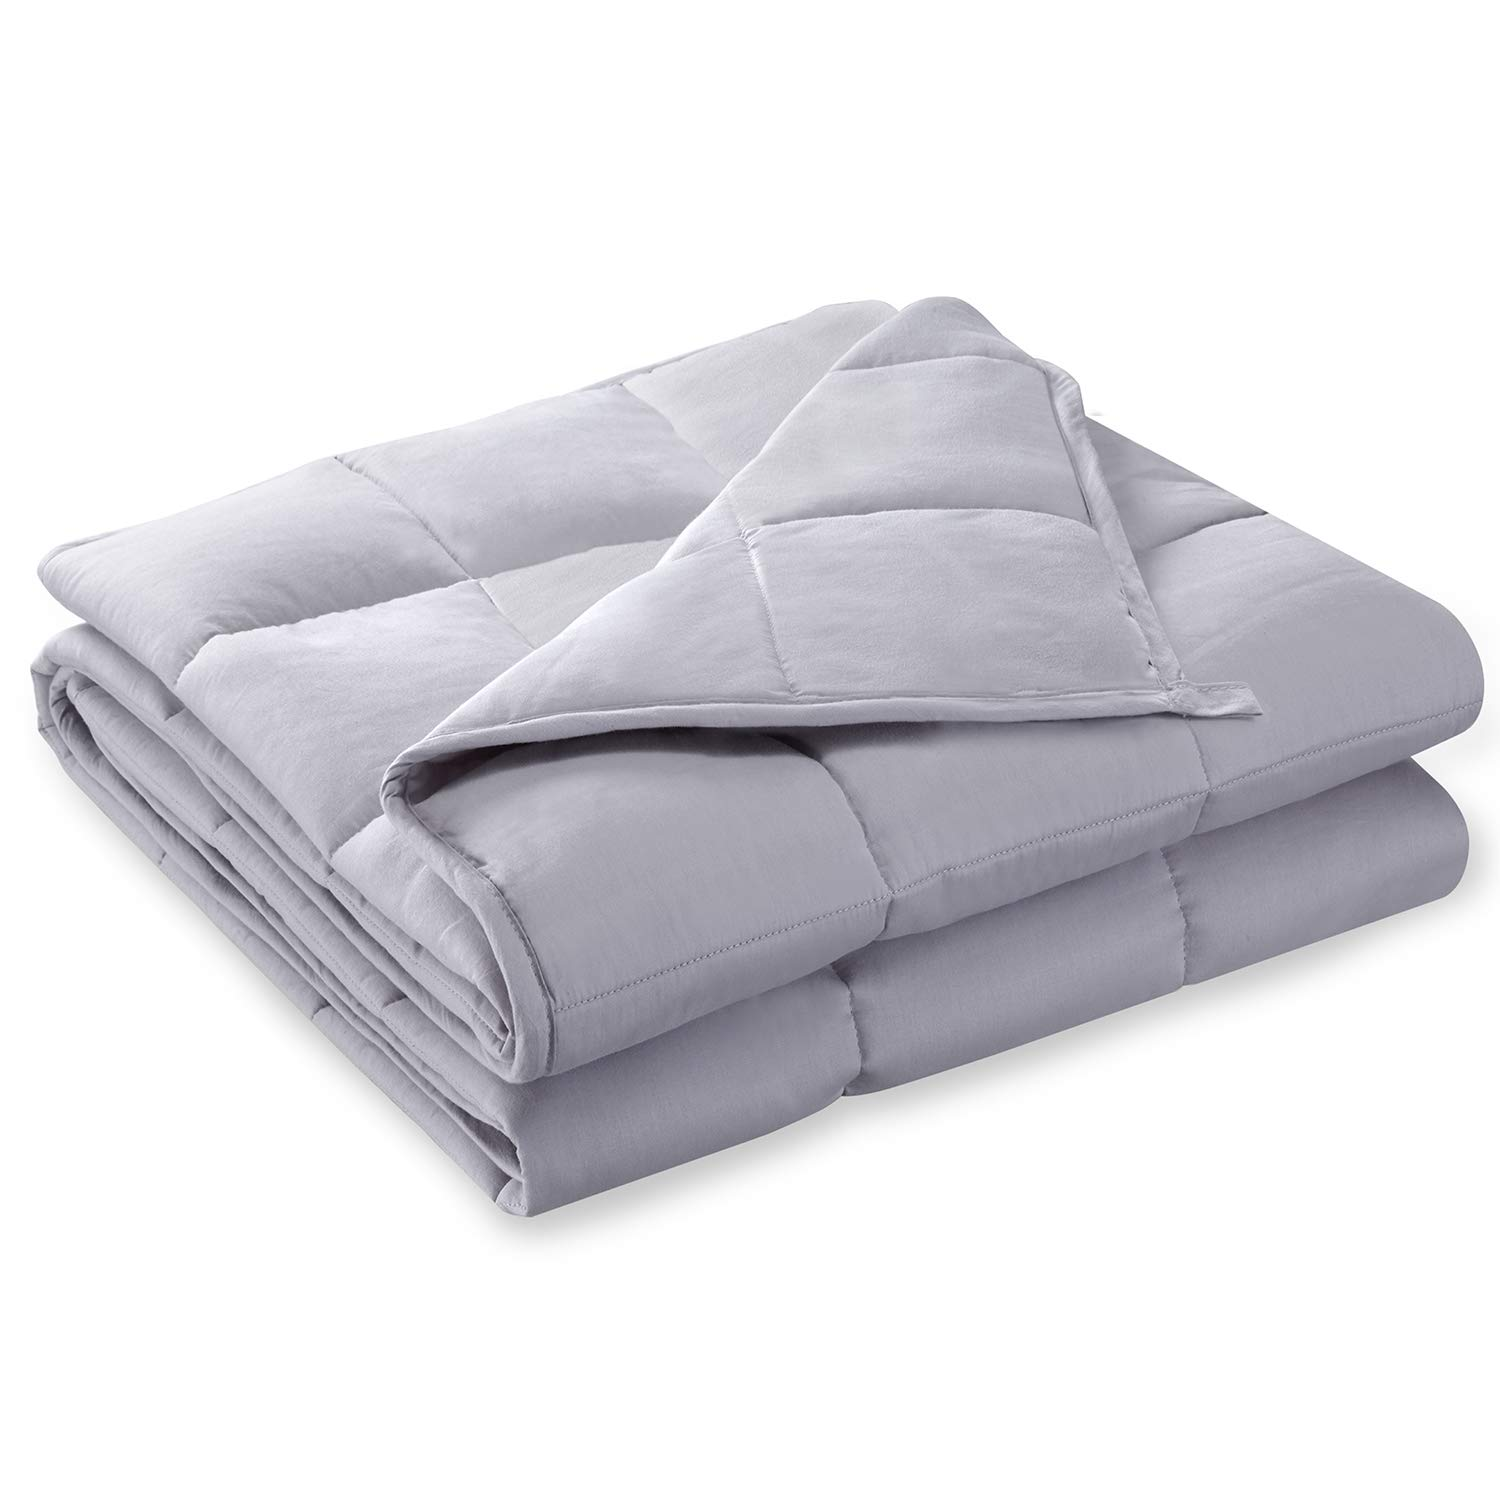 BUZIO Weighted Blanket (20 lbs for 180-200 lbs Persons, Queen Size) Heavy Blanket for Adults, 60'' x 80'', Light Grey